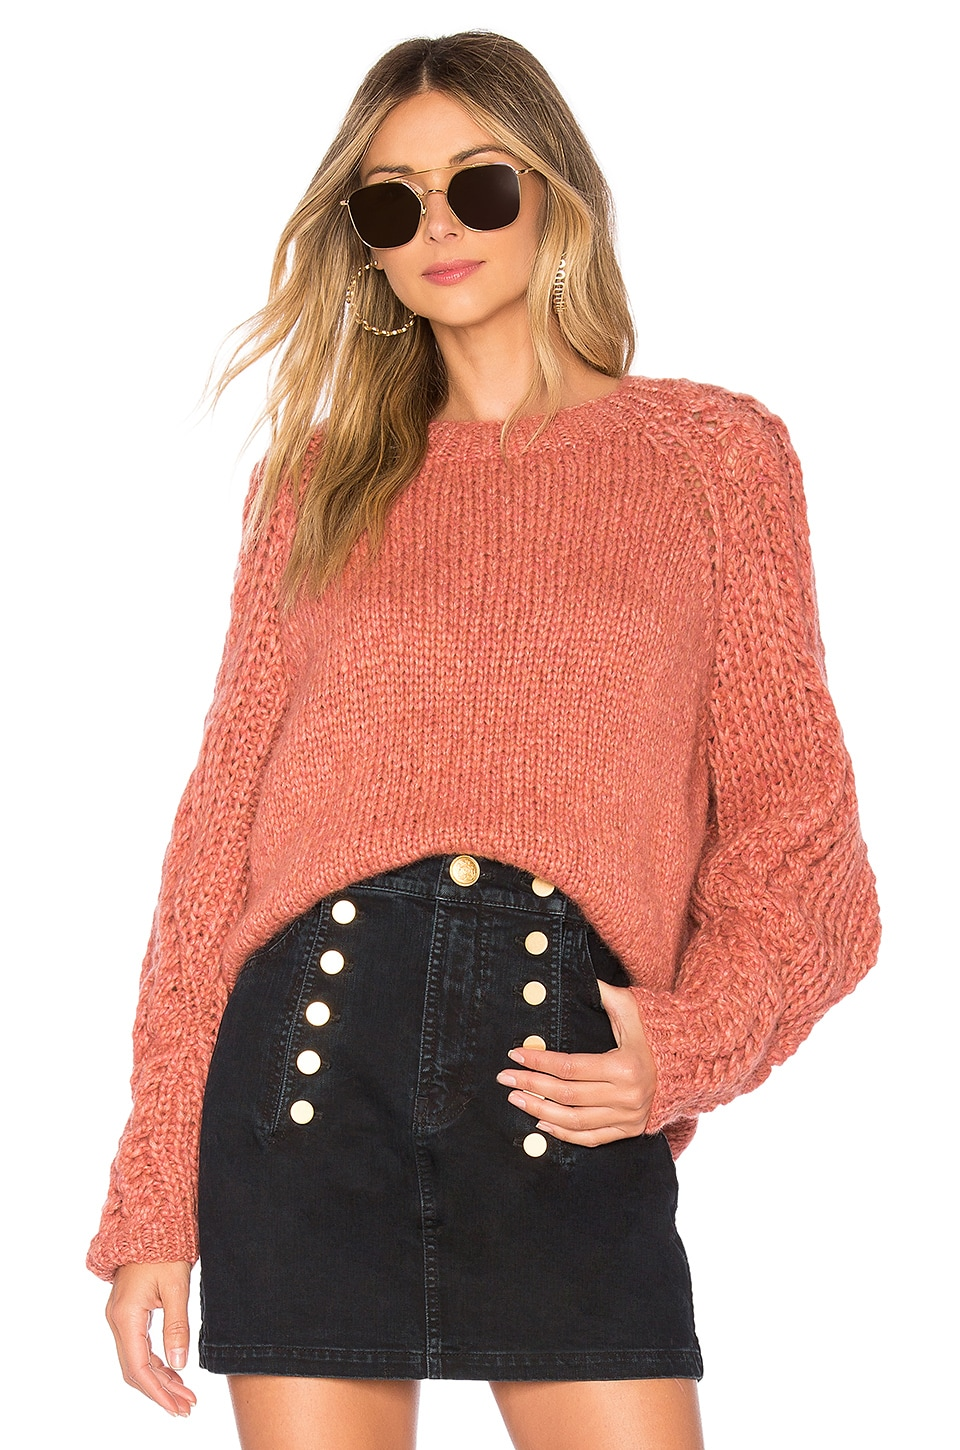 ONEONONE Confidence Sweater in Pink